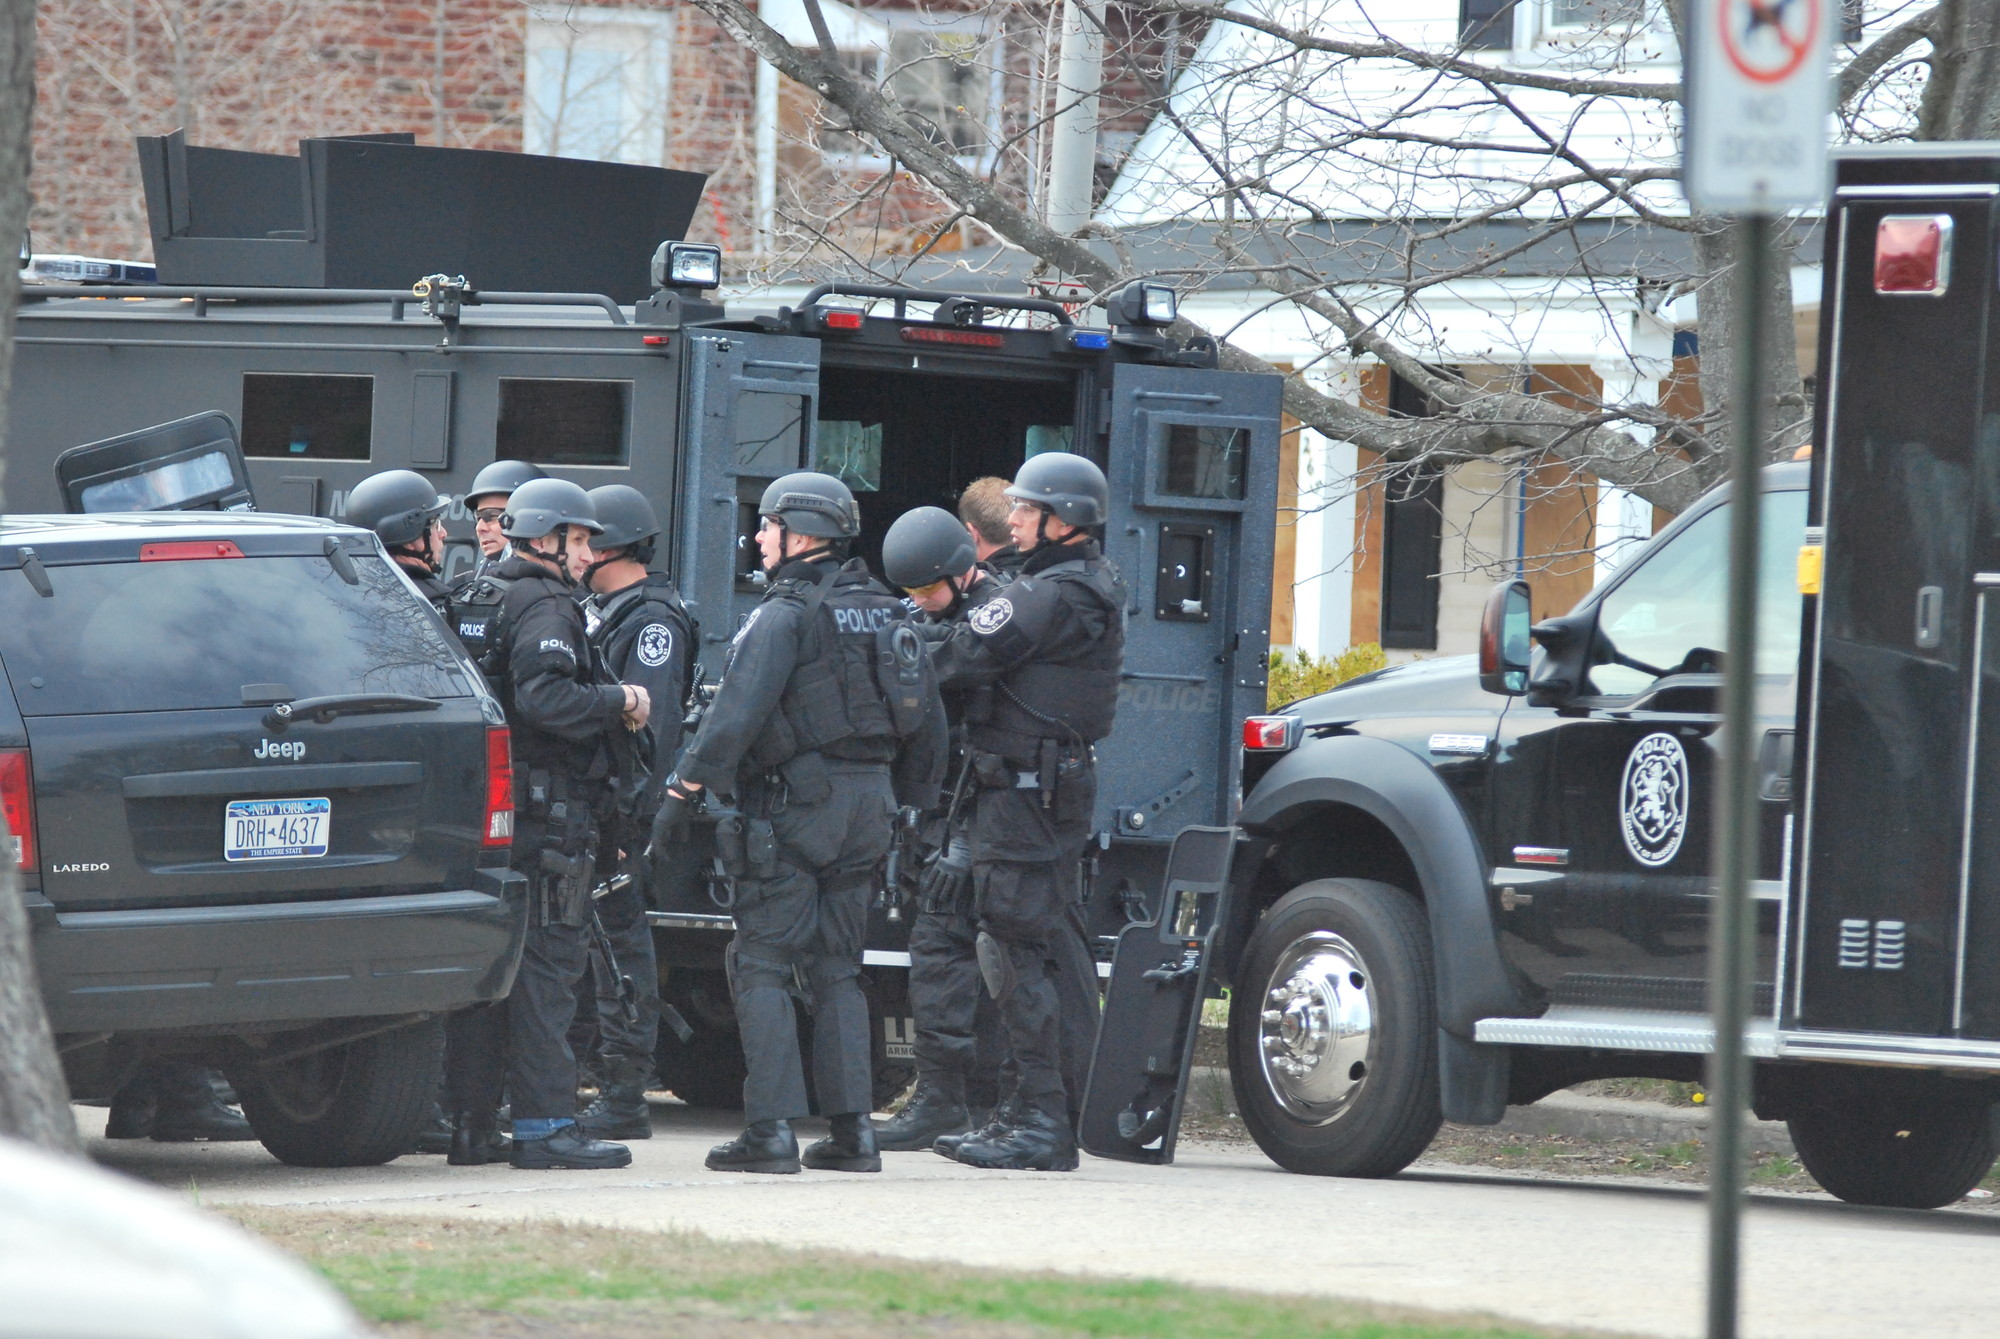 A Nassau County Police Department SWAT team entered a home on Laurelton Boulevard Tuesday after a false 911 call was made to police claiming that a teenager had shot his mother and brother.